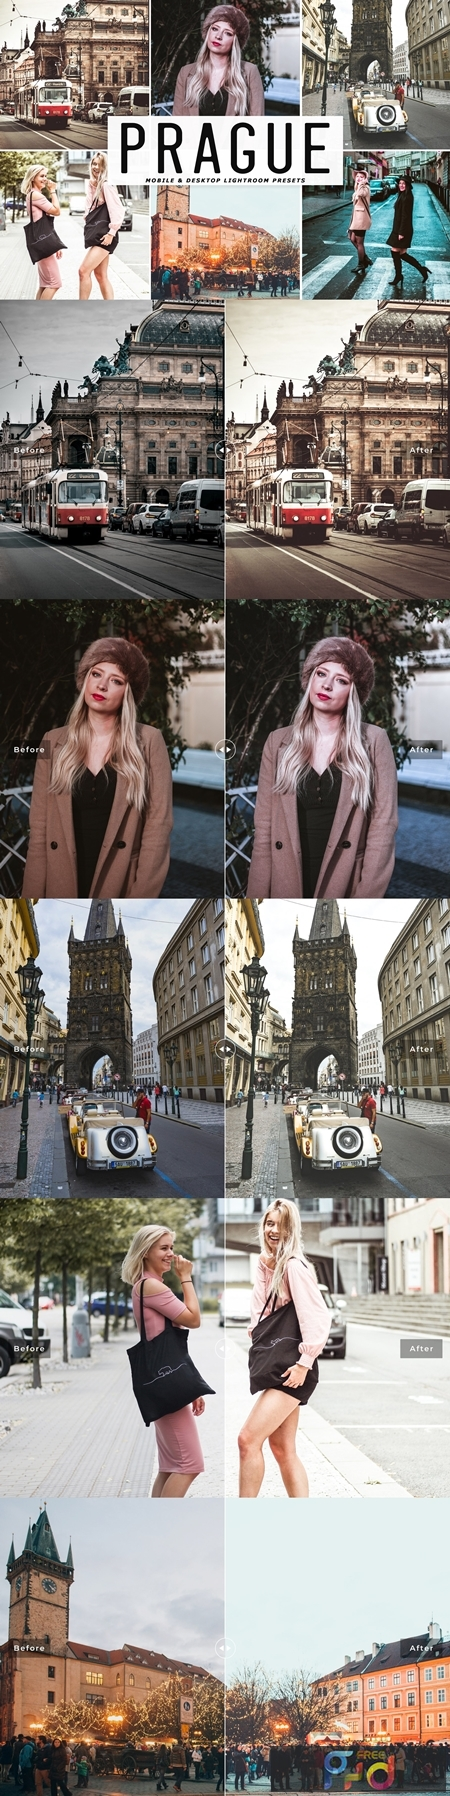 Prague Pro Lightroom Presets 4401166 1